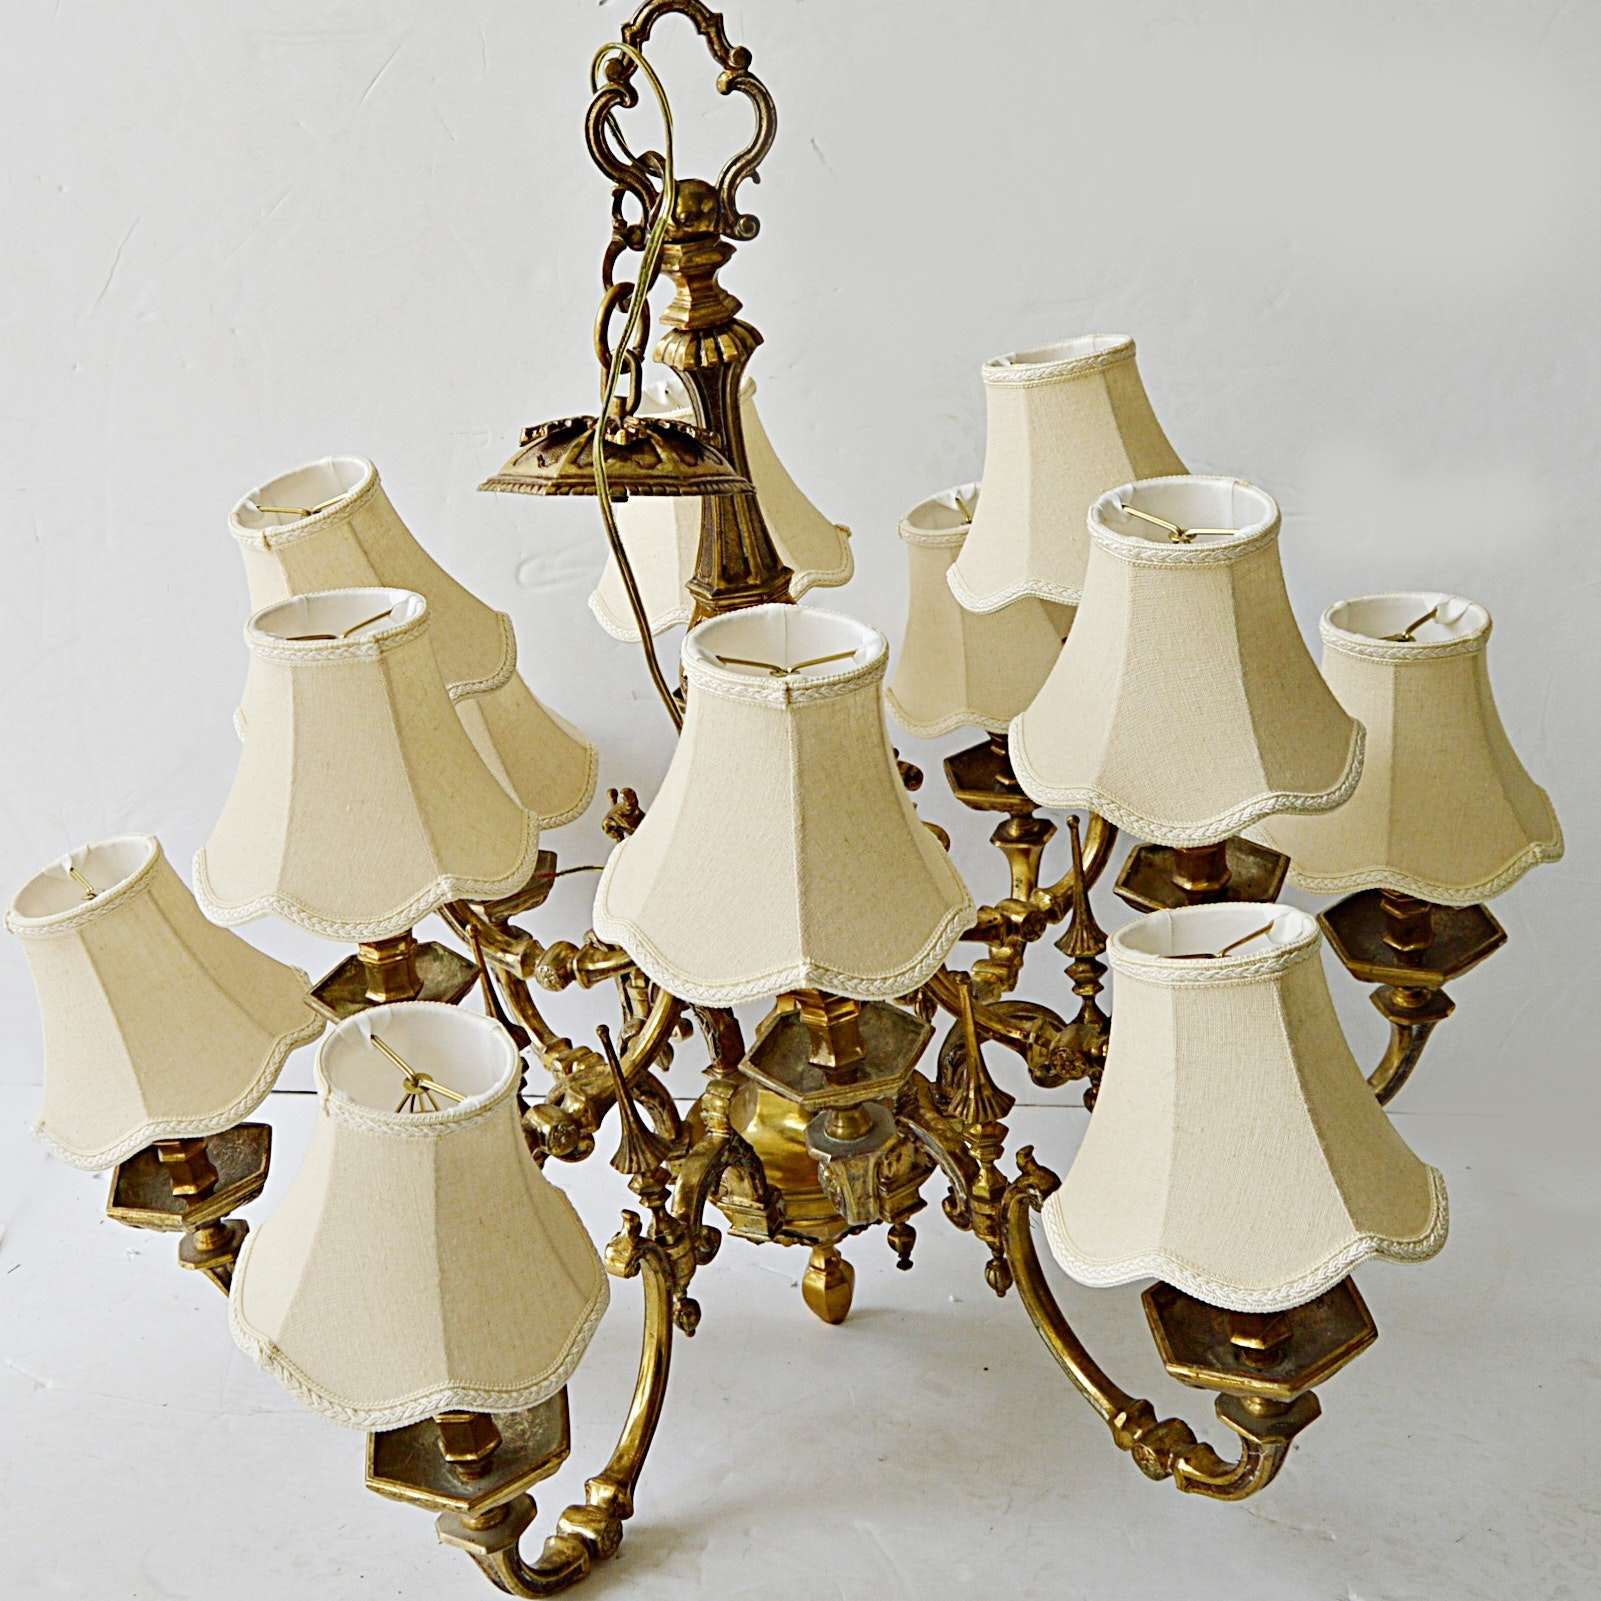 Vintage Twelve-Light Brass Chandelier